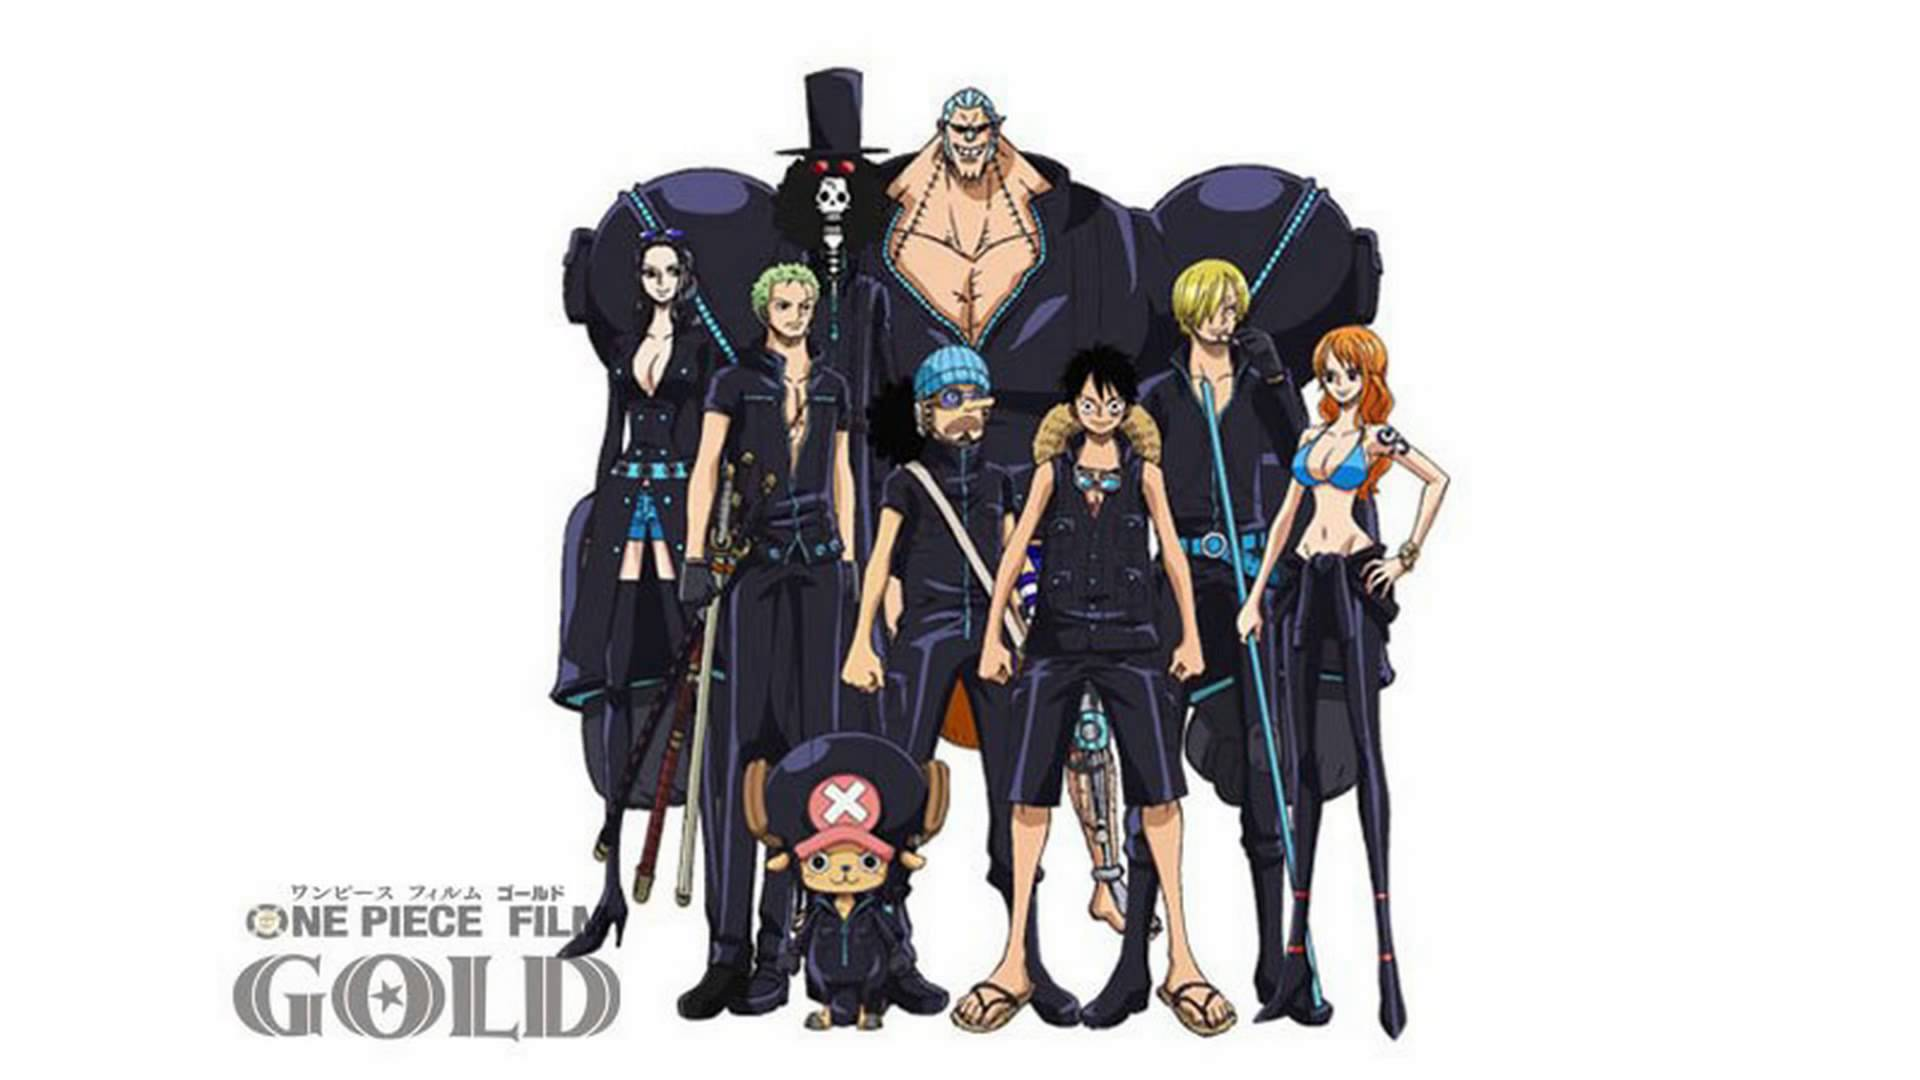 One Piece Film Gold Wallpaper One Piece Straw Hat Pirates Gold 1920x1080 Wallpaper Teahub Io